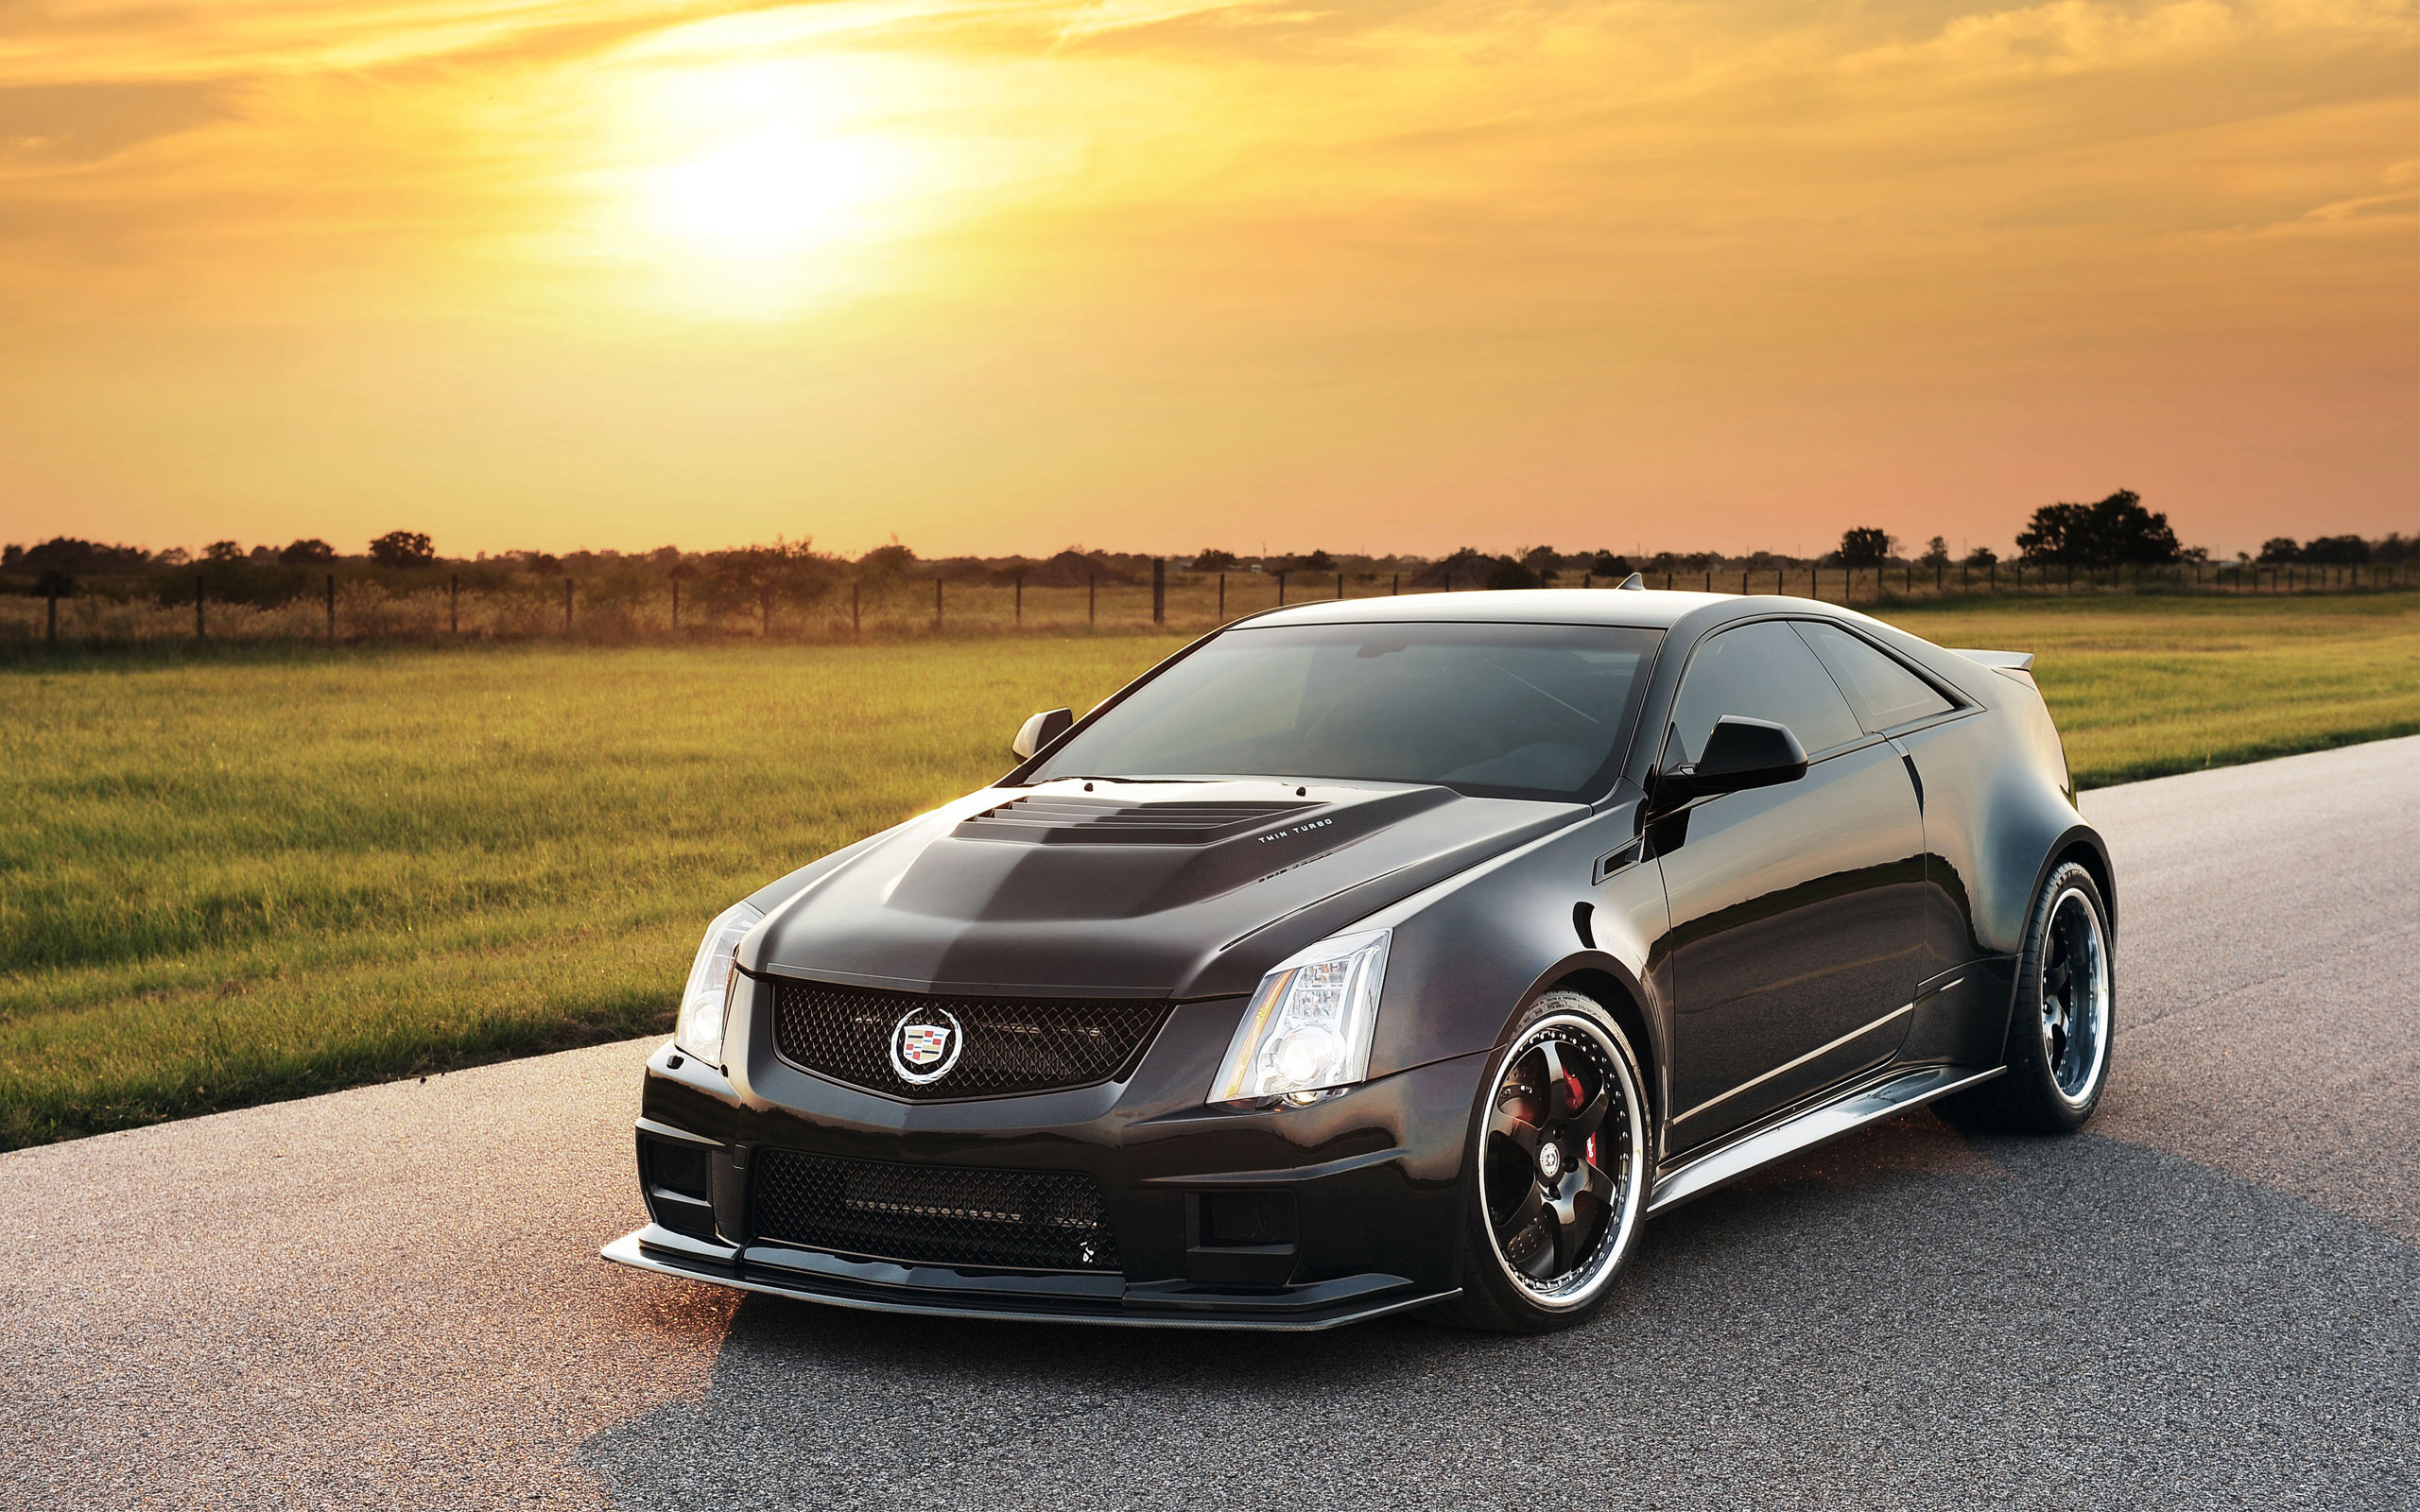 2013 Cadillac Cts V Wallpaper Hd Car Wallpapers Id 3073